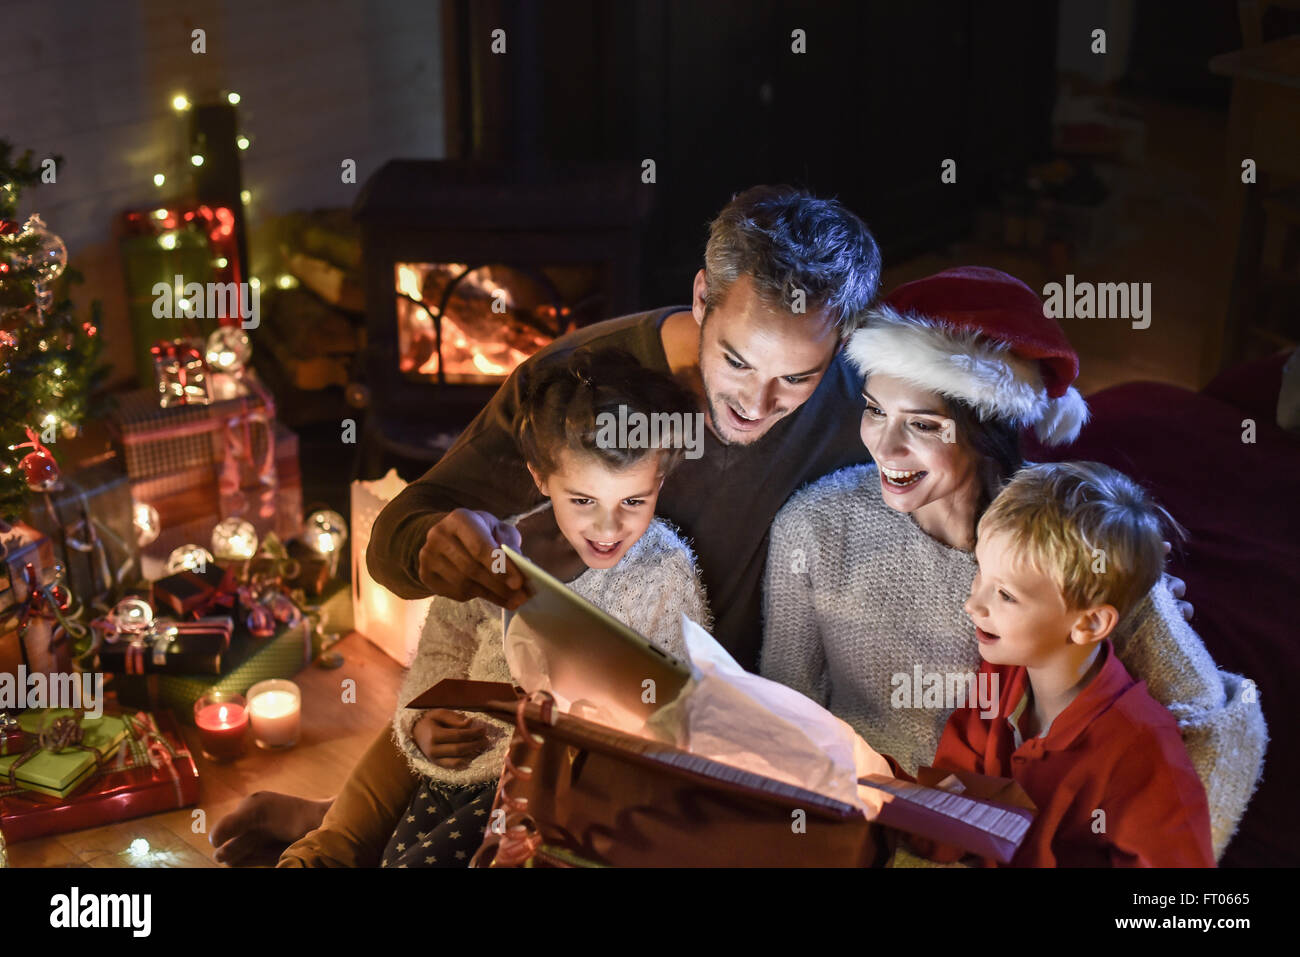 8dfa3bac21269 happy family finds a digital tablet in a gift on the Christmas night, near  the wood stove and lit Christmas tree in their living room, the mother  wears a ...